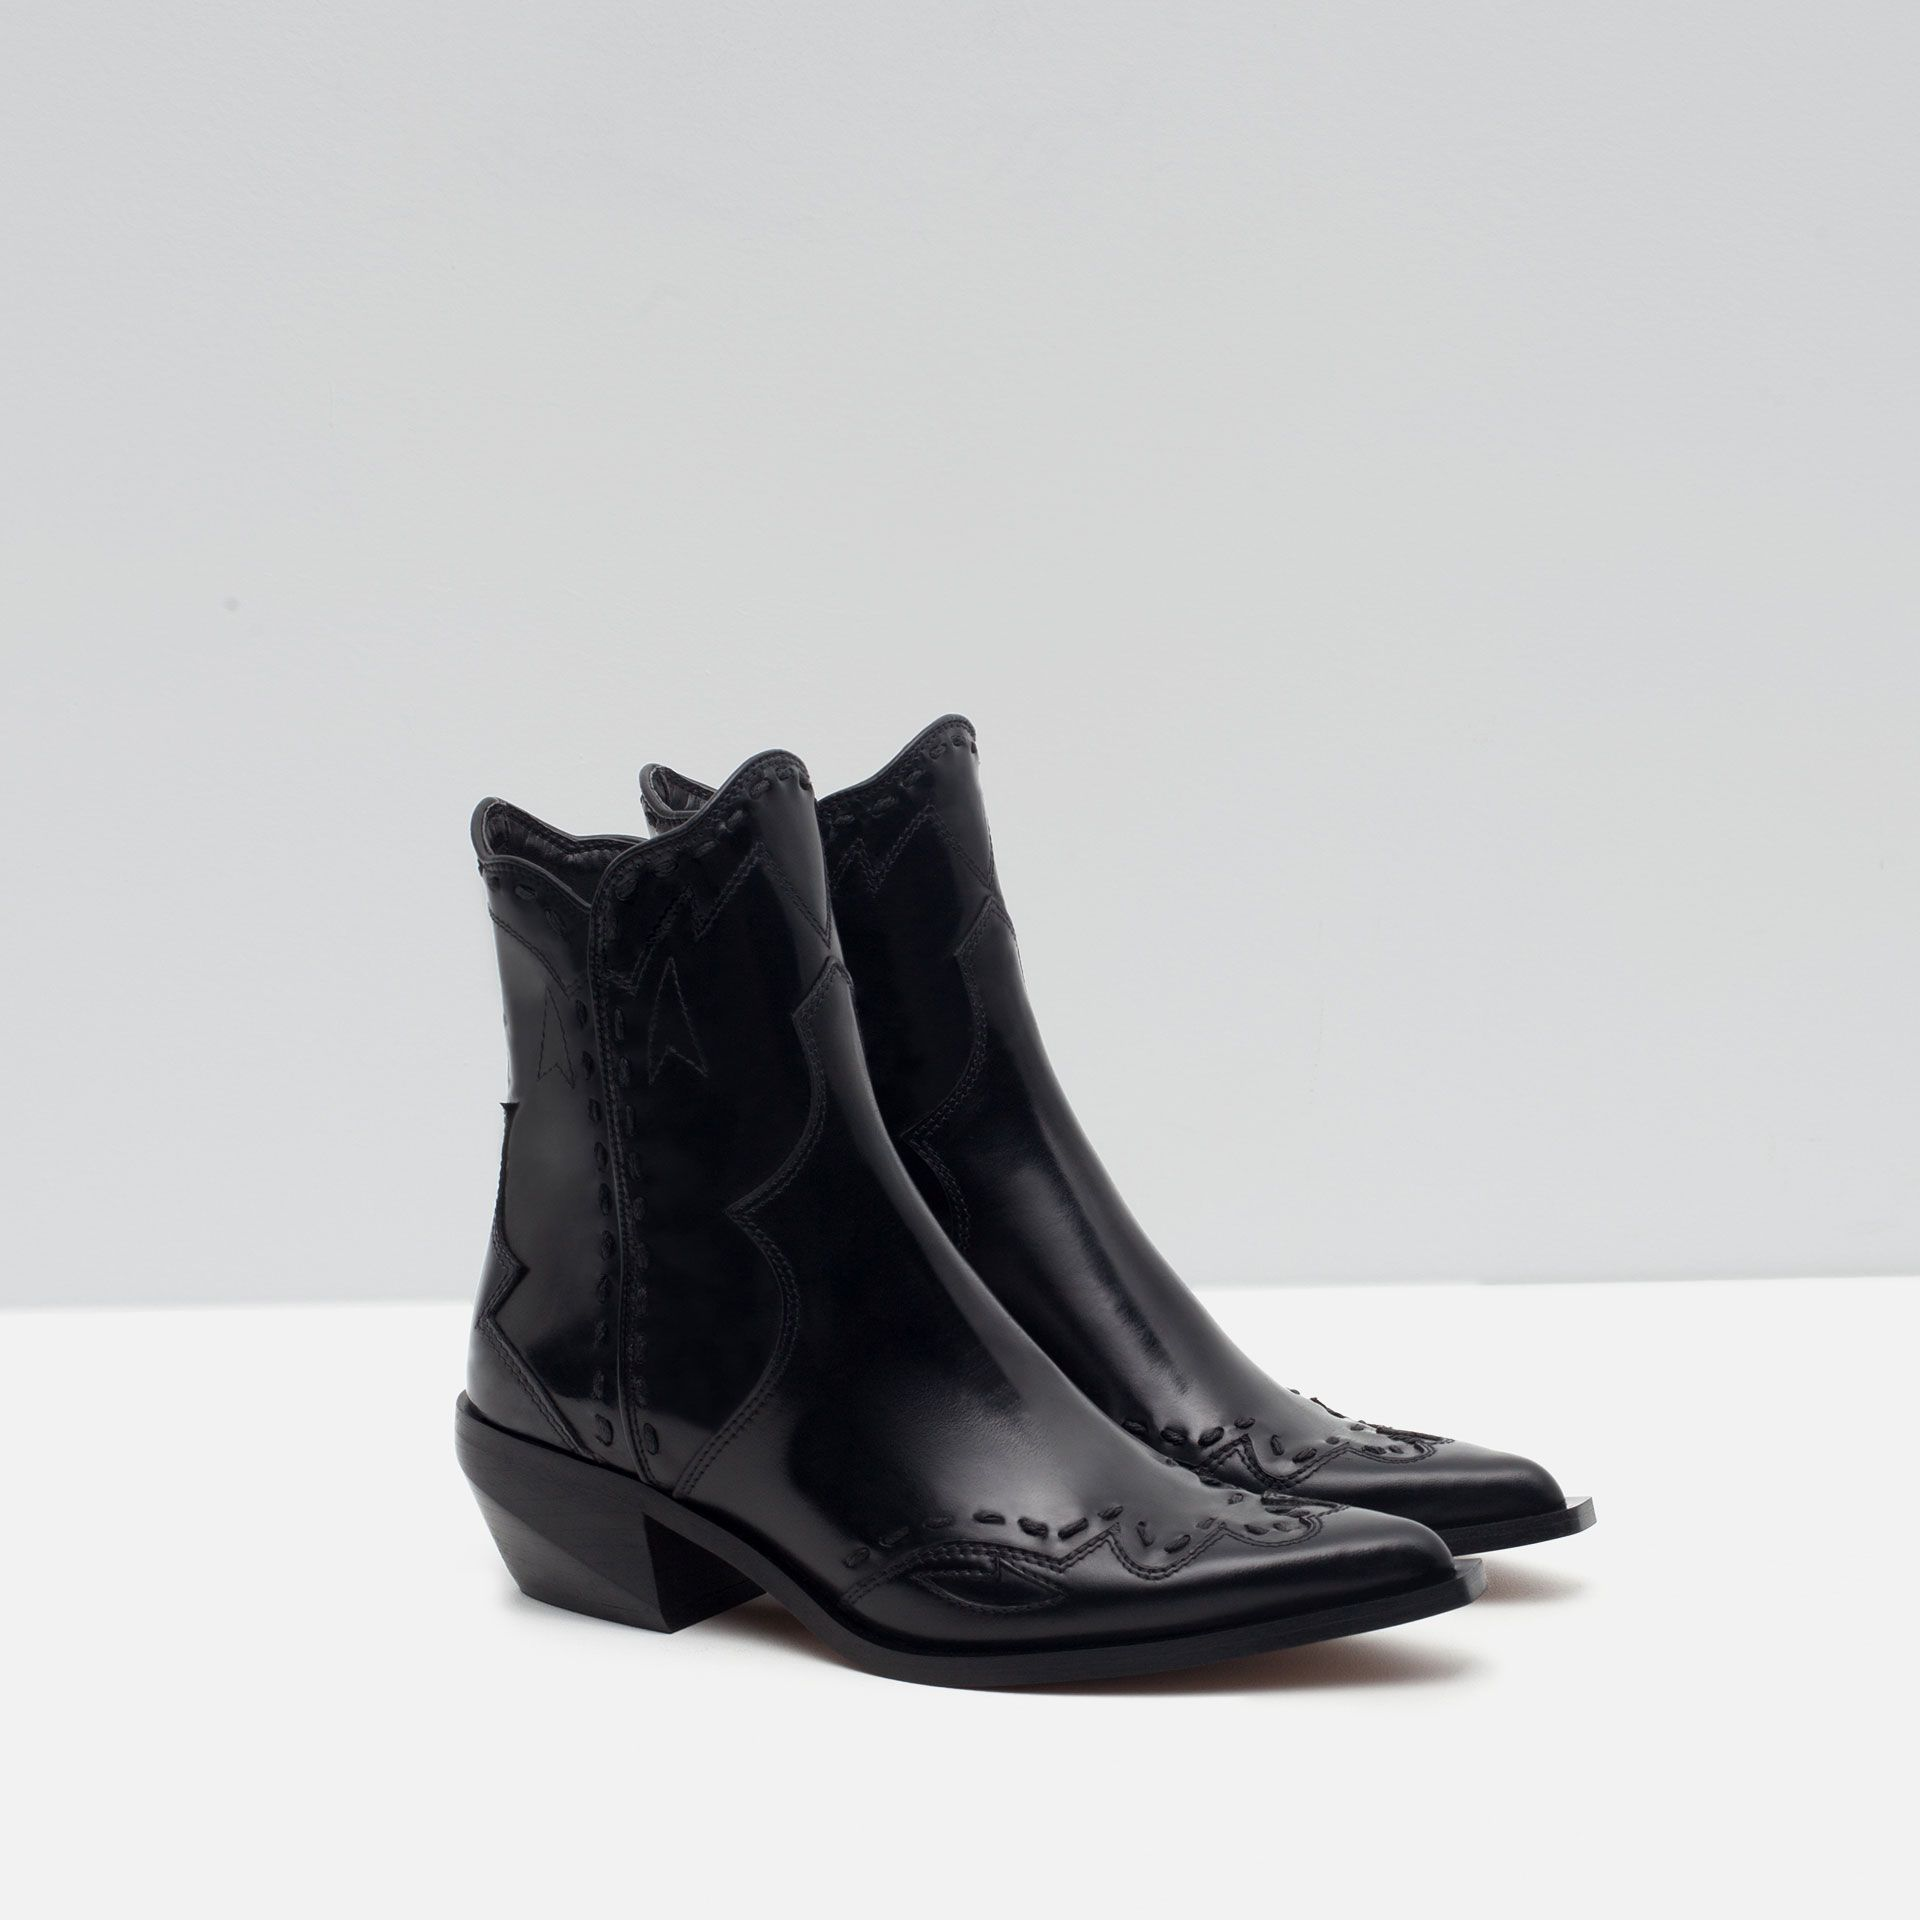 7fa0a403a Image 4 of FLAT LEATHER COWBOY ANKLE BOOTS from Zara | Boots ...